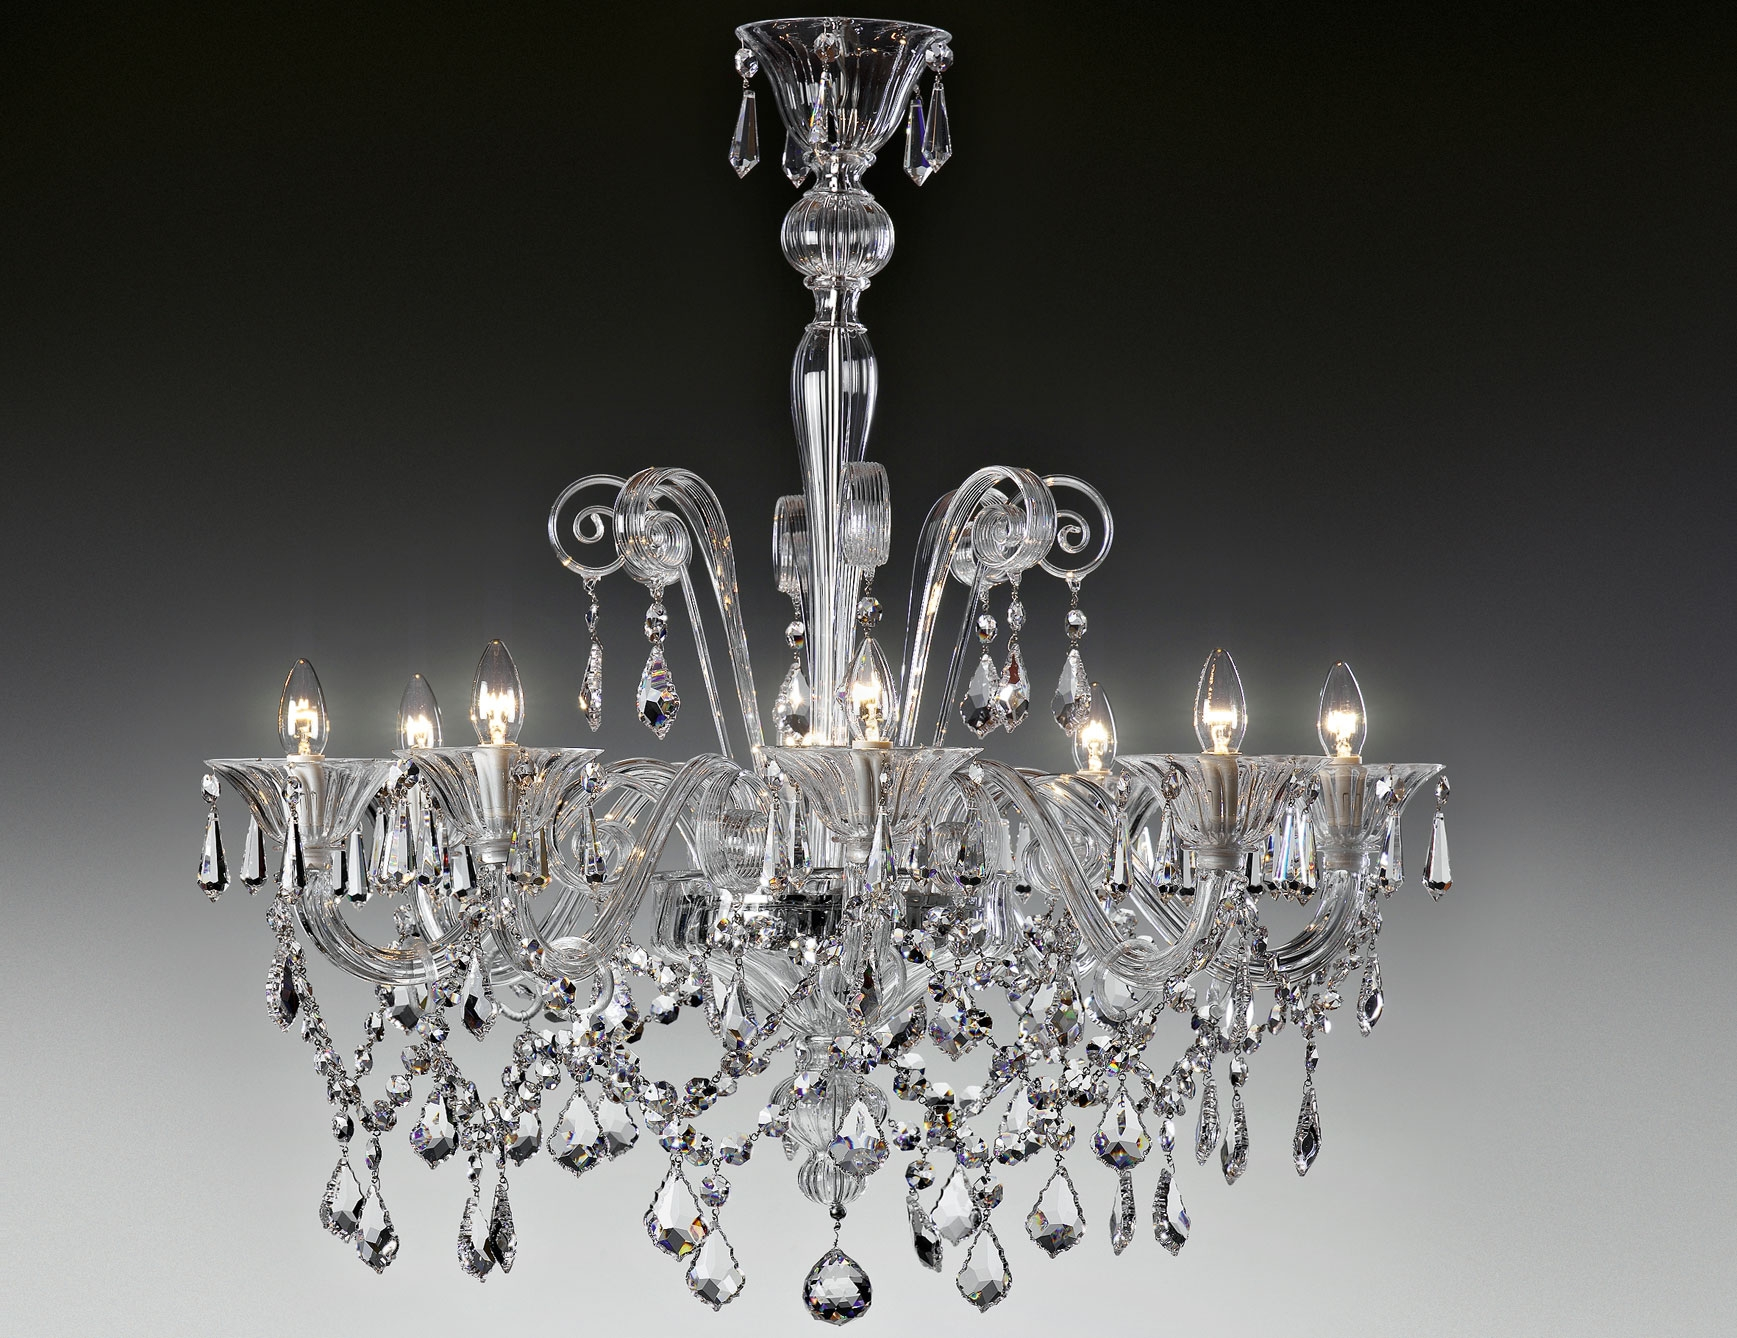 Nella Vetrina Lulu 9016 8 Modern Italian Chandelier Clear Murano Glass Throughout Italian Chandeliers (Image 11 of 15)